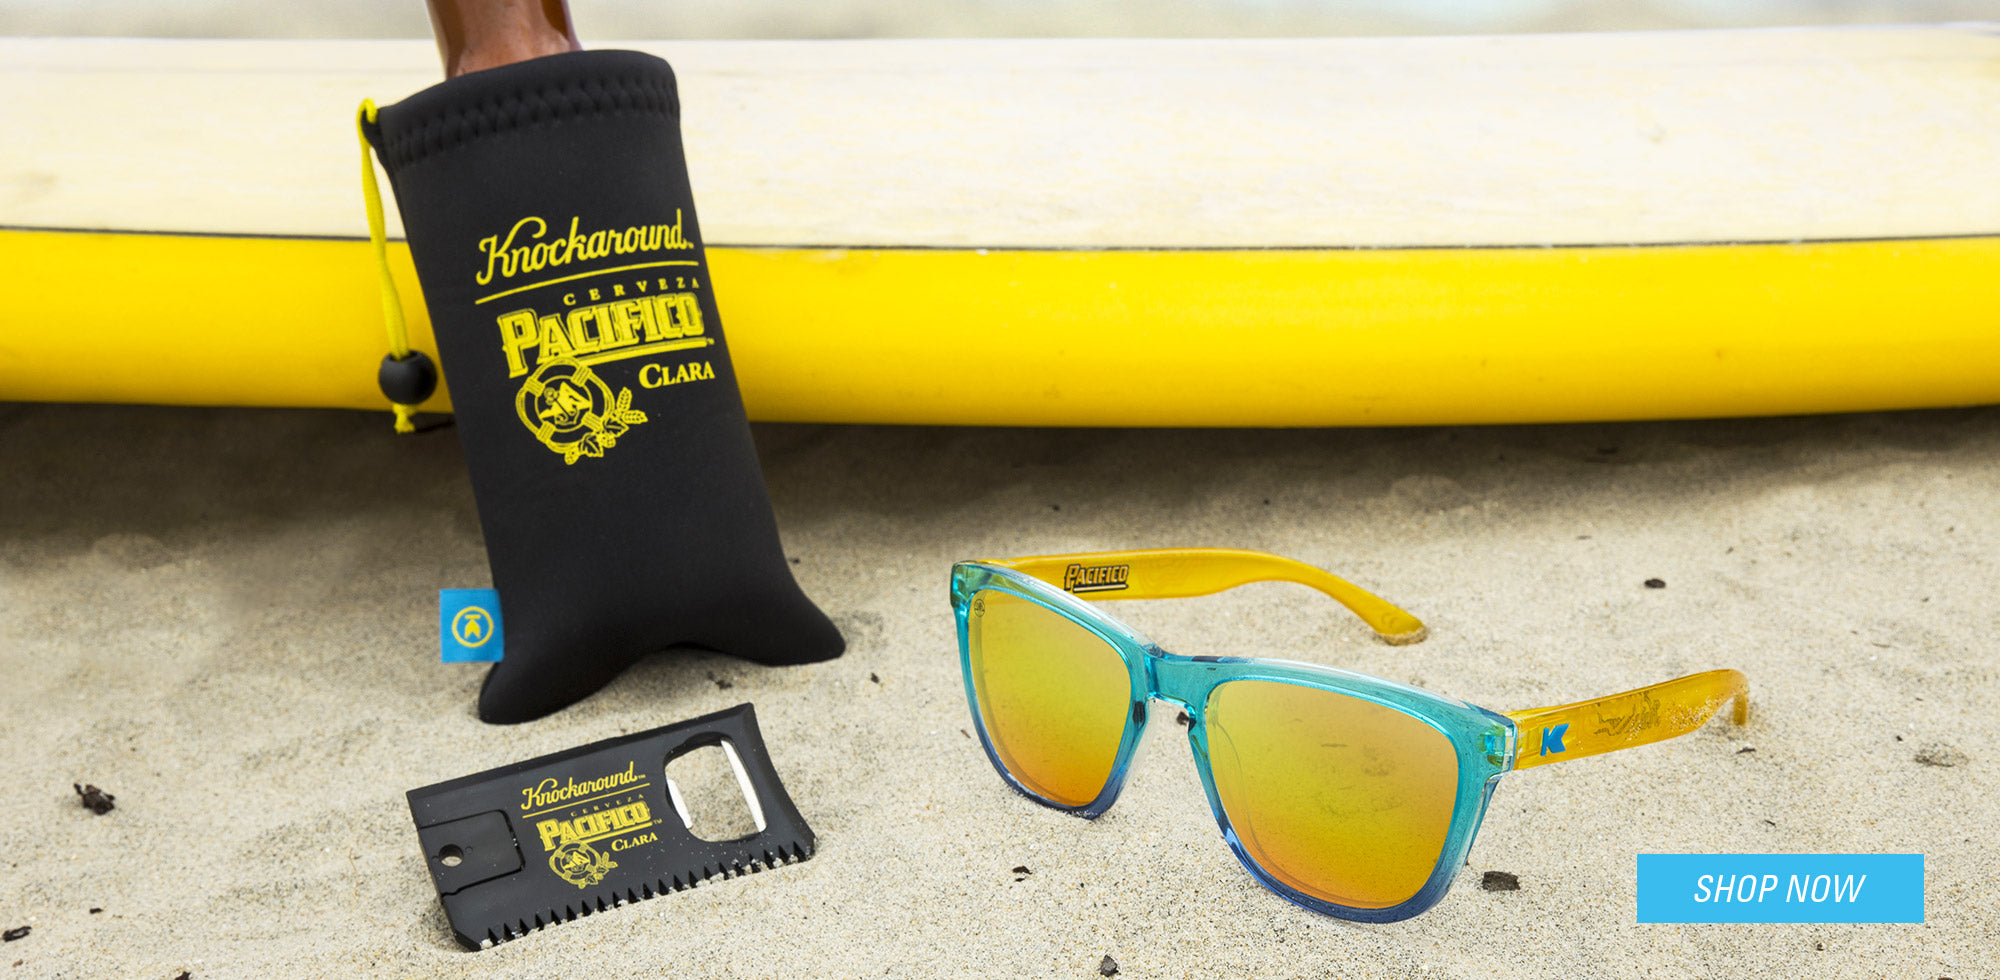 Pacifico x Knockaround